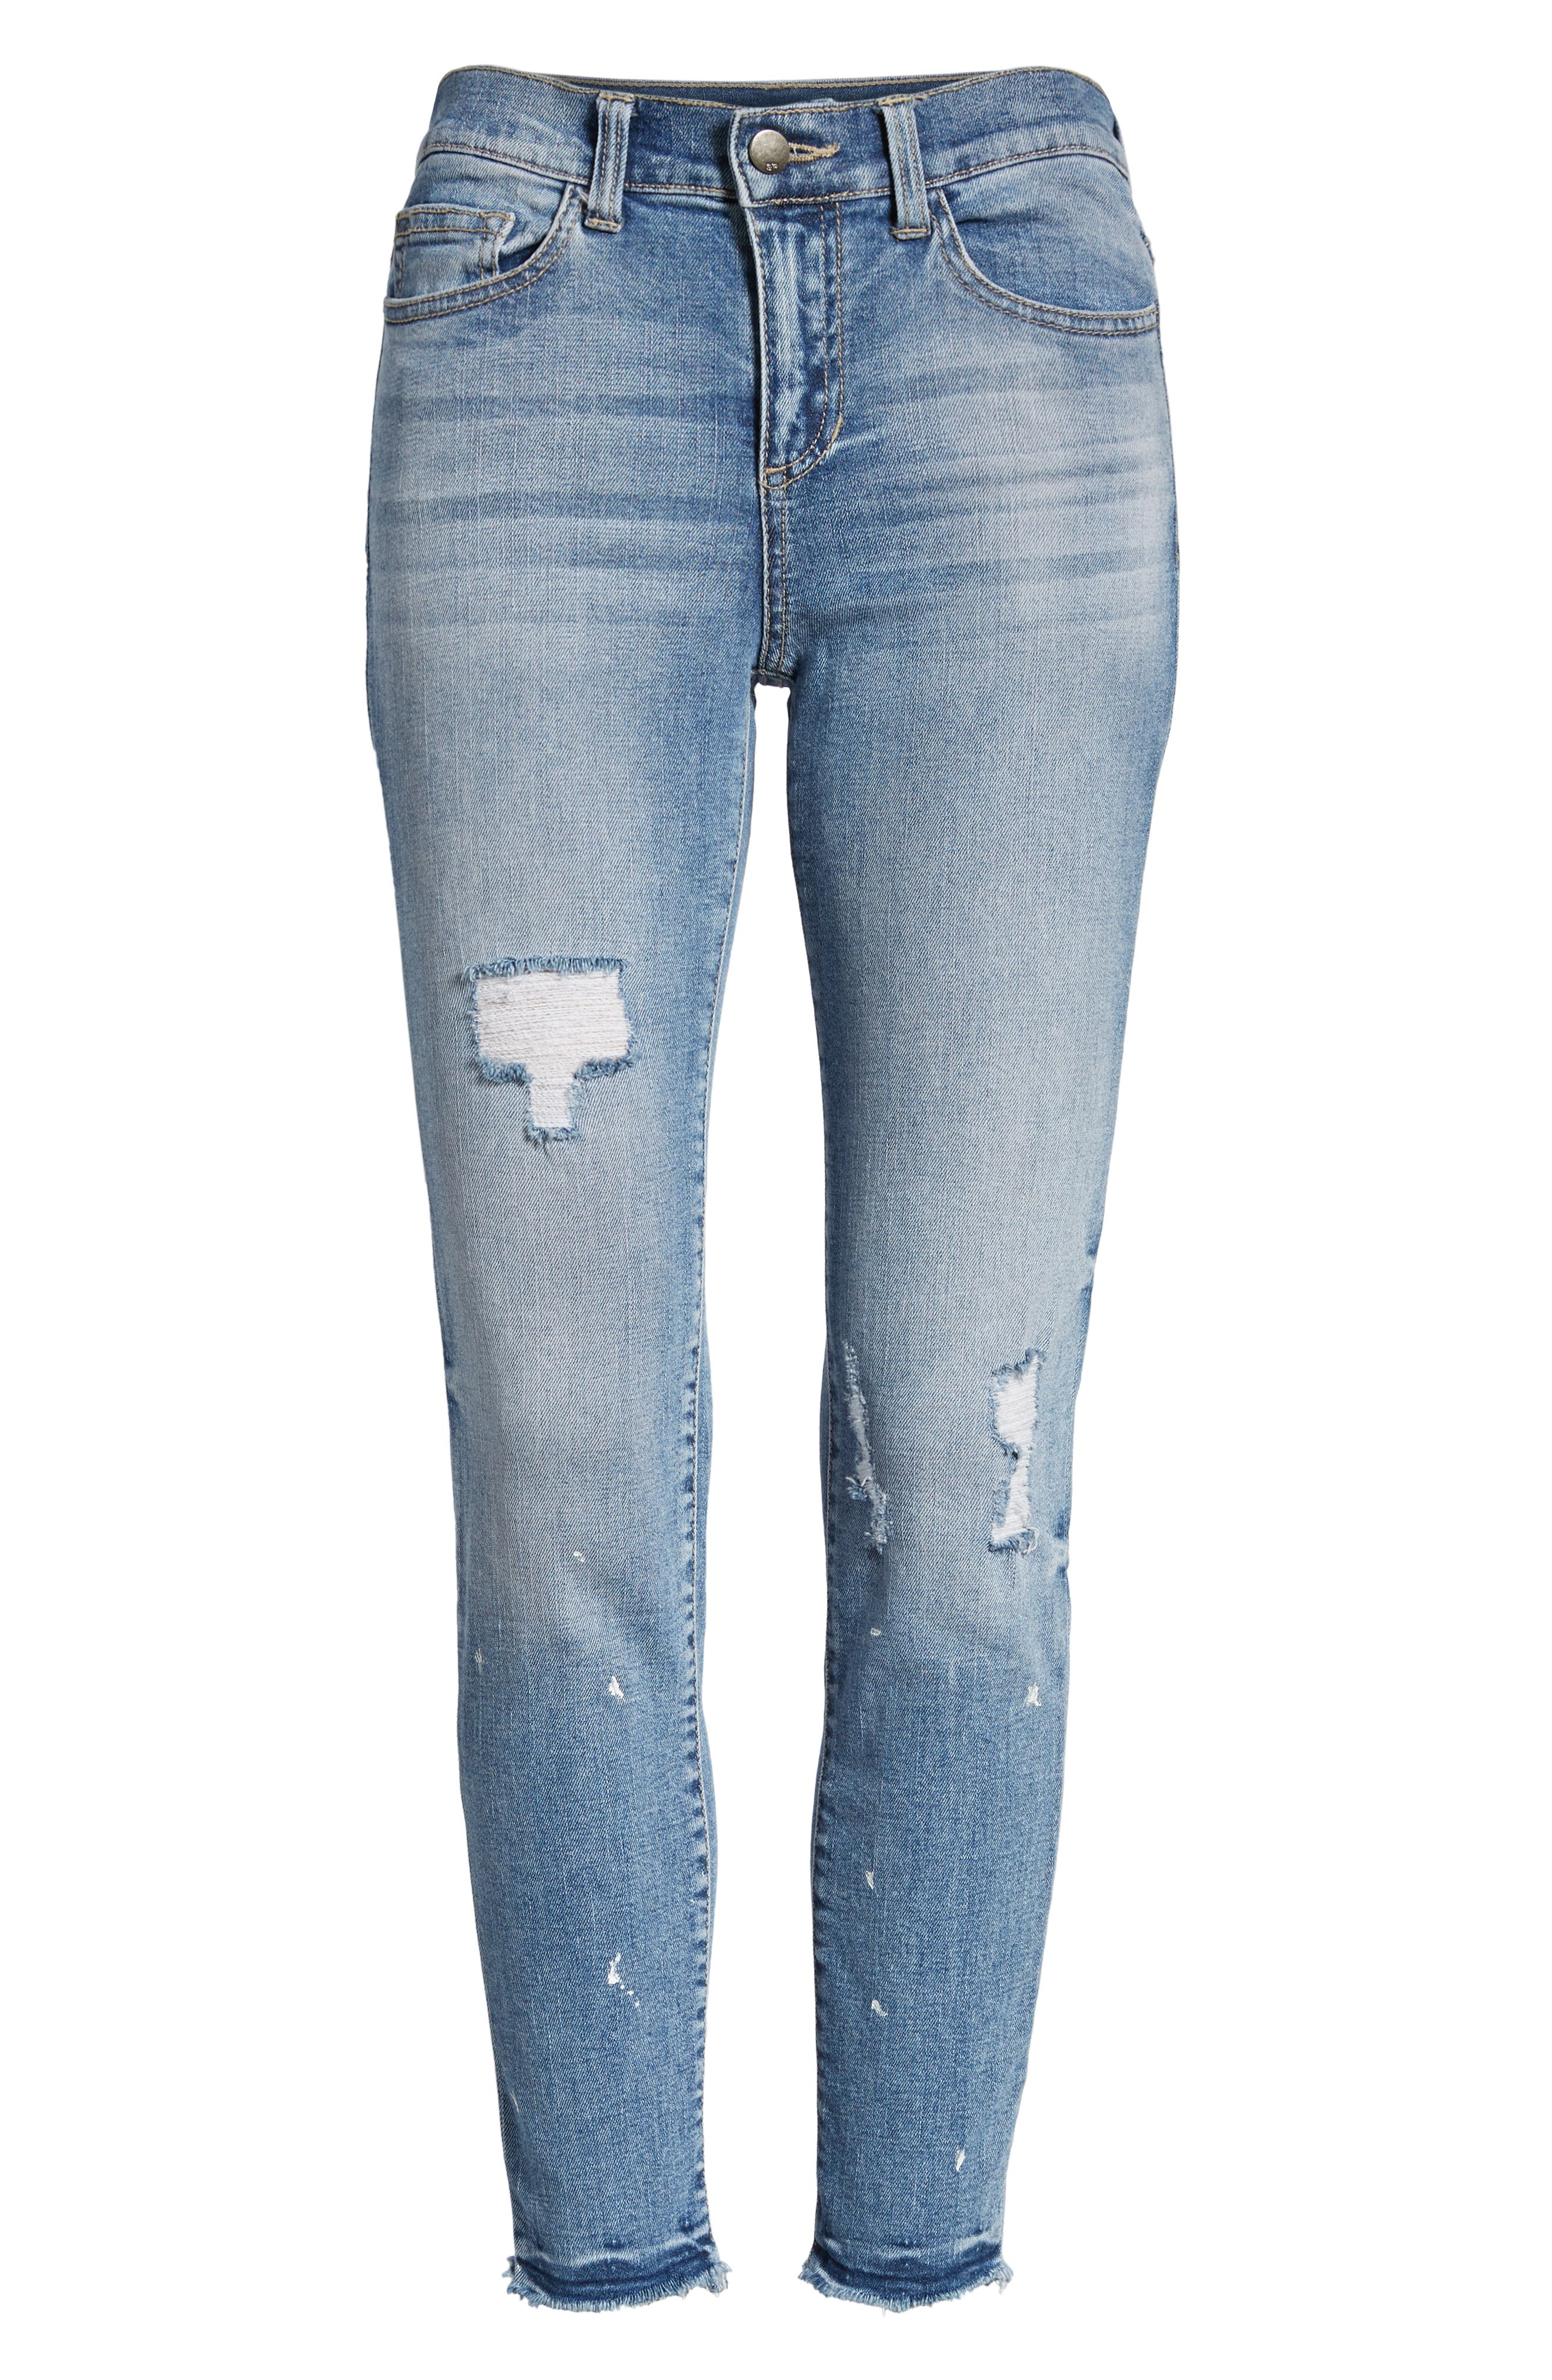 Ripped Skinny Jeans,                             Alternate thumbnail 6, color,                             Light Wash